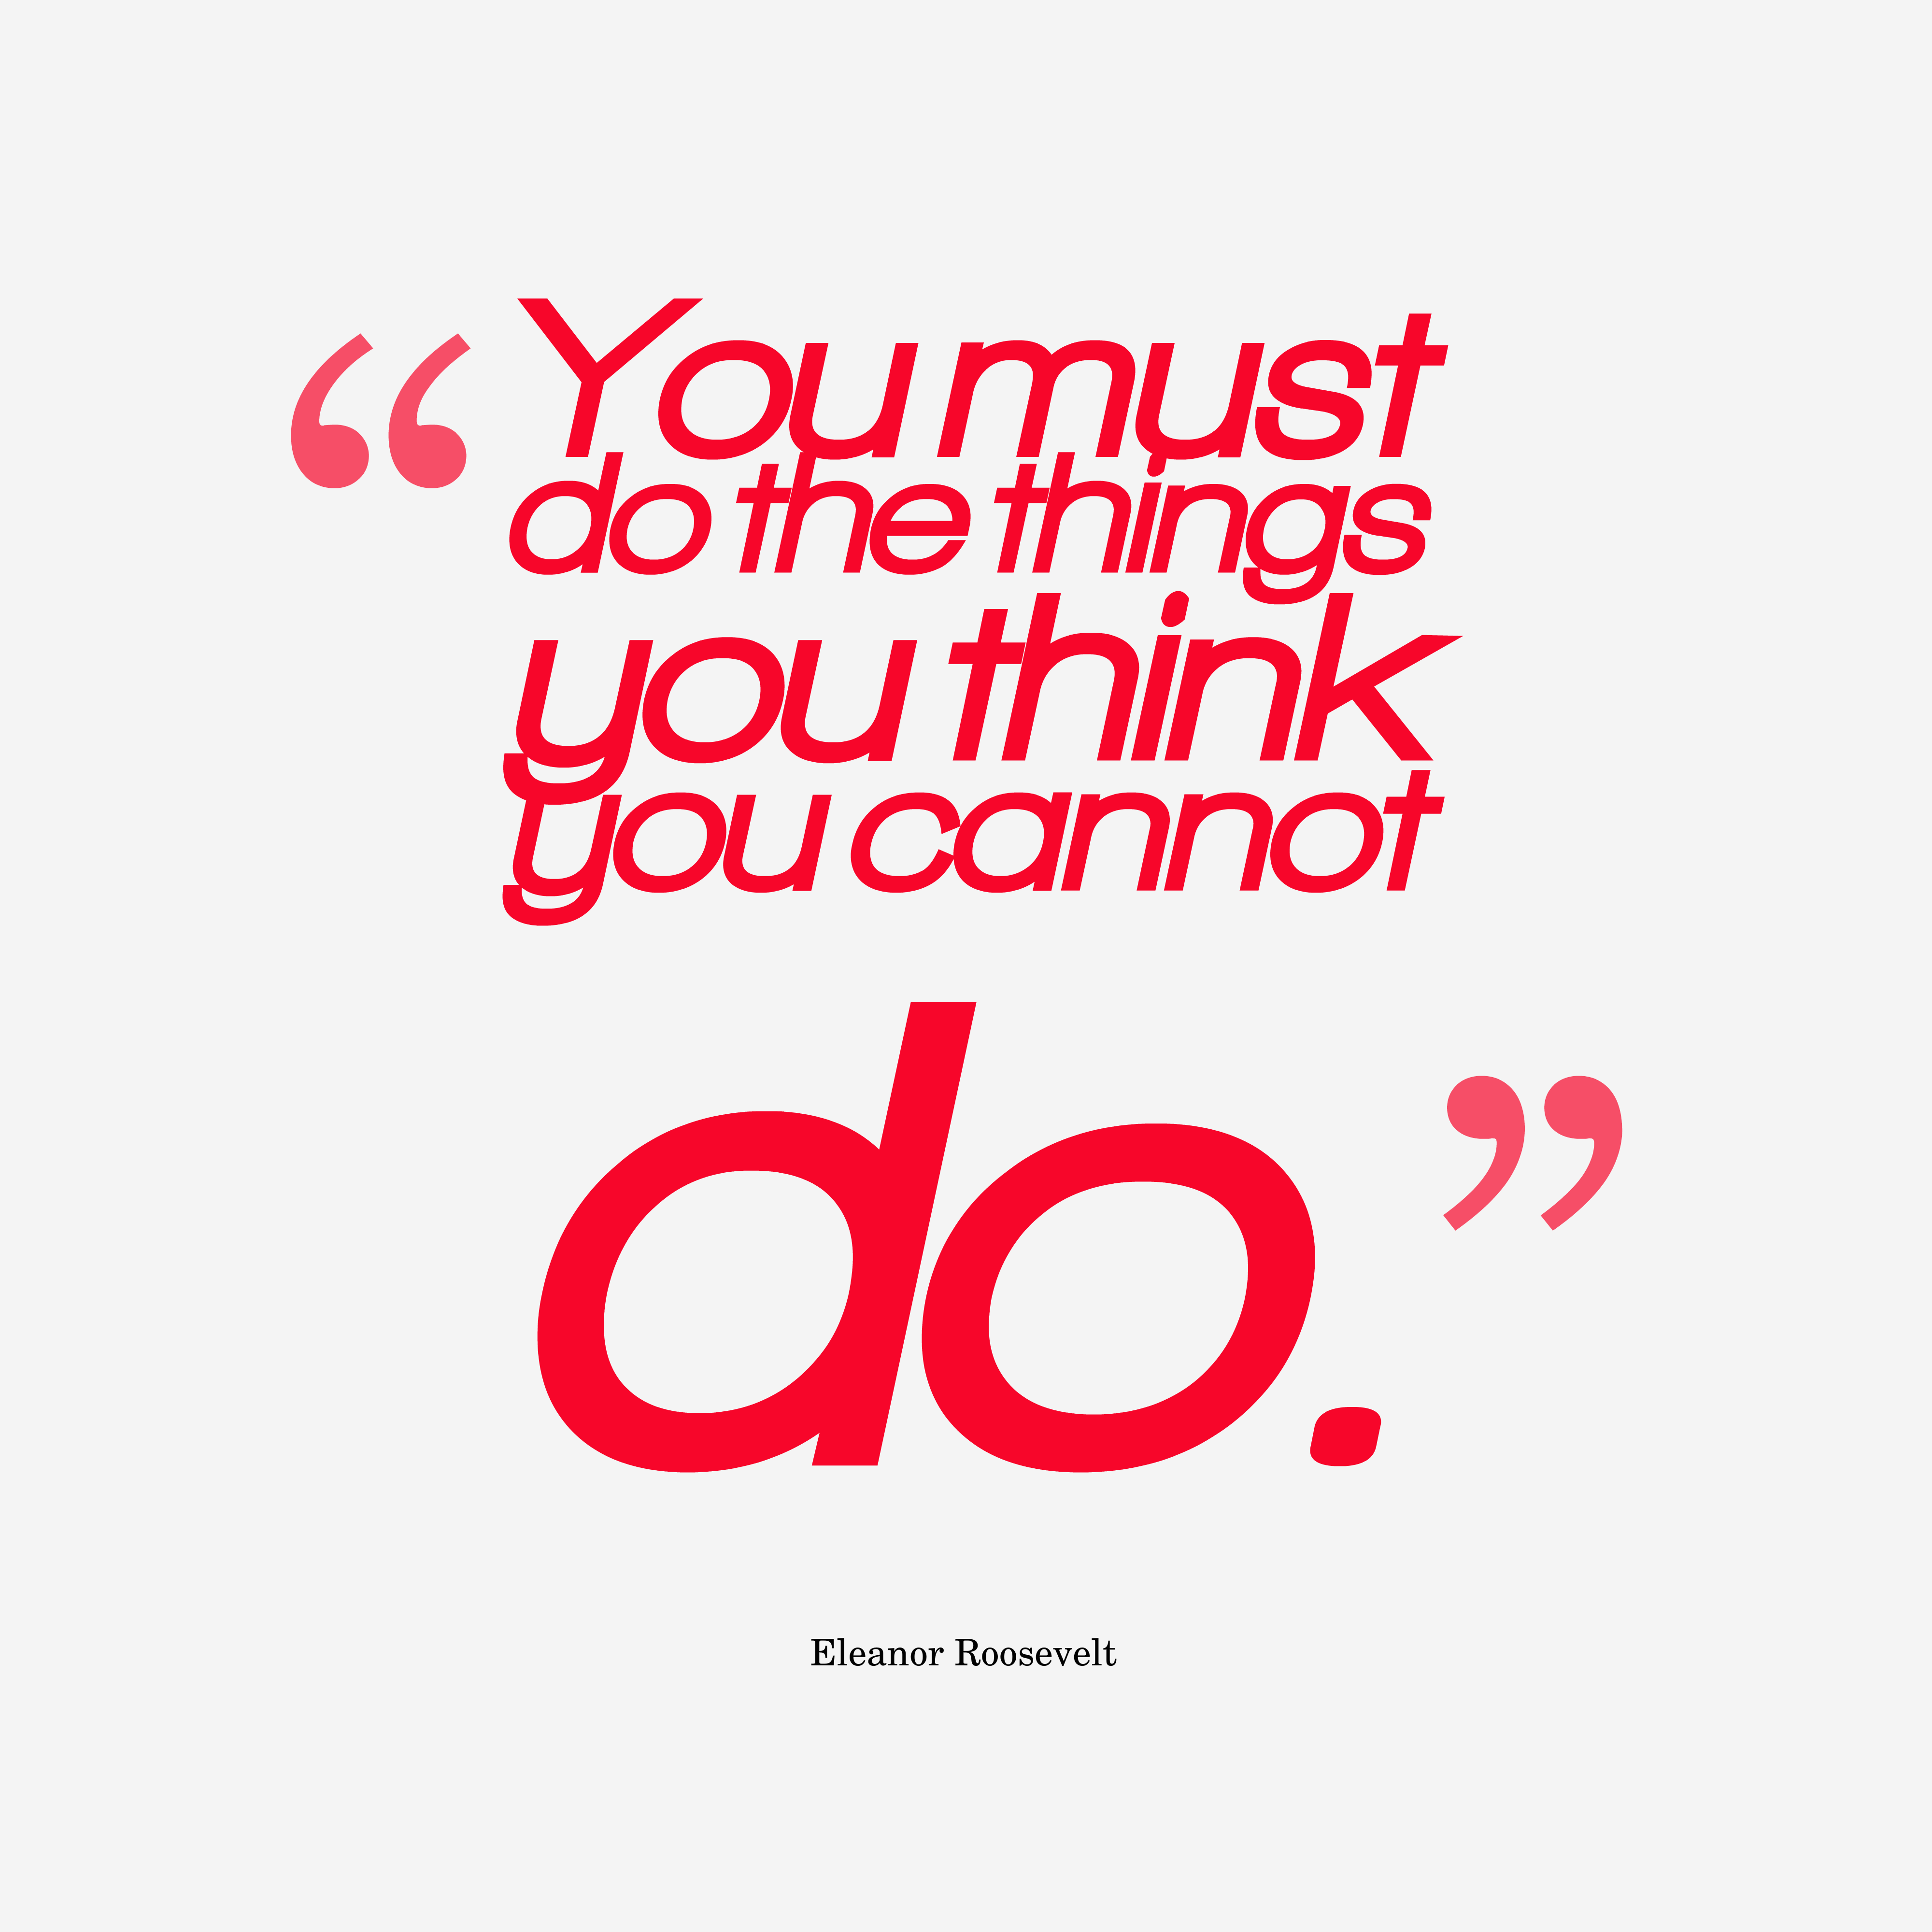 Eleanor Roosevelt Quote About Motivational